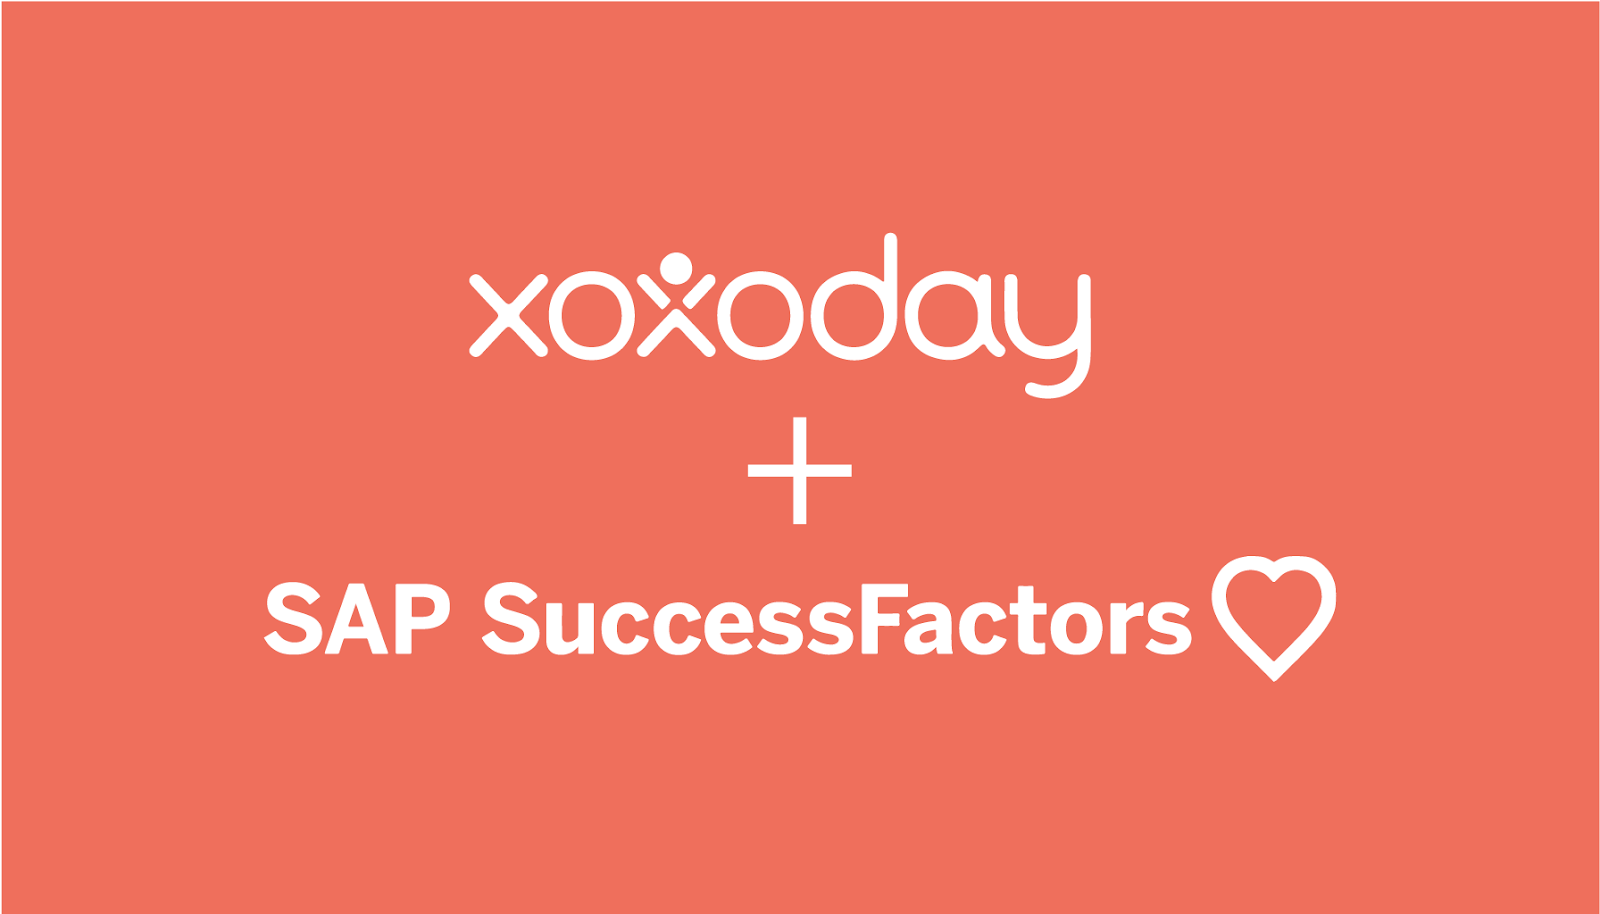 Xoxoday+SAP SuccessFactors